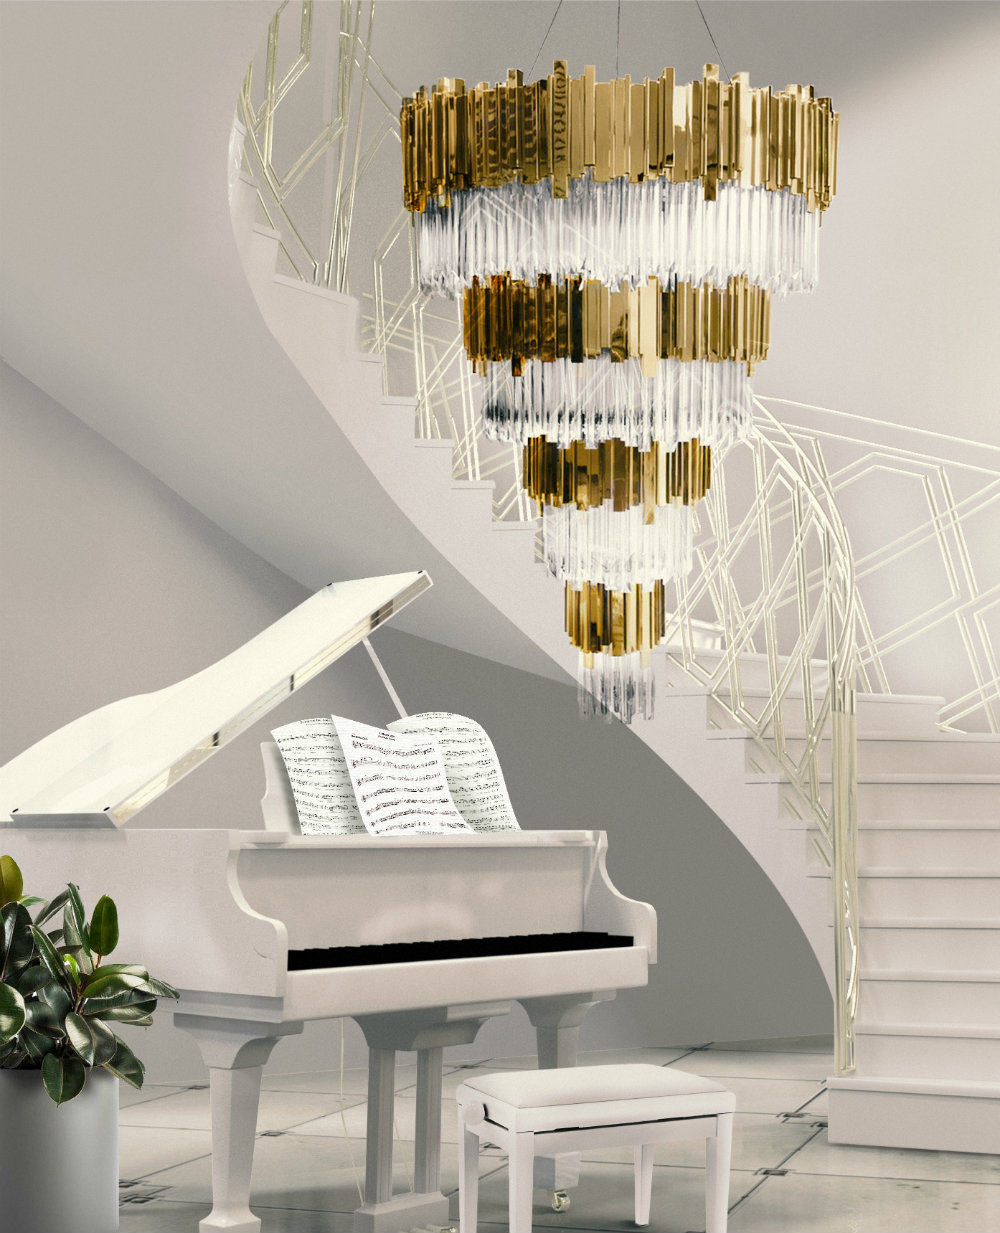 6 Luxurious Stairwell Designs You'll Love luxury furniture Get to Know Luxxu's Newest Luxury Furniture Designs 6 Luxurious Stairwell Designs Youll Love 01 luxury furniture Get to Know Luxxu's Newest Luxury Furniture Designs 6 Luxurious Stairwell Designs Youll Love 01